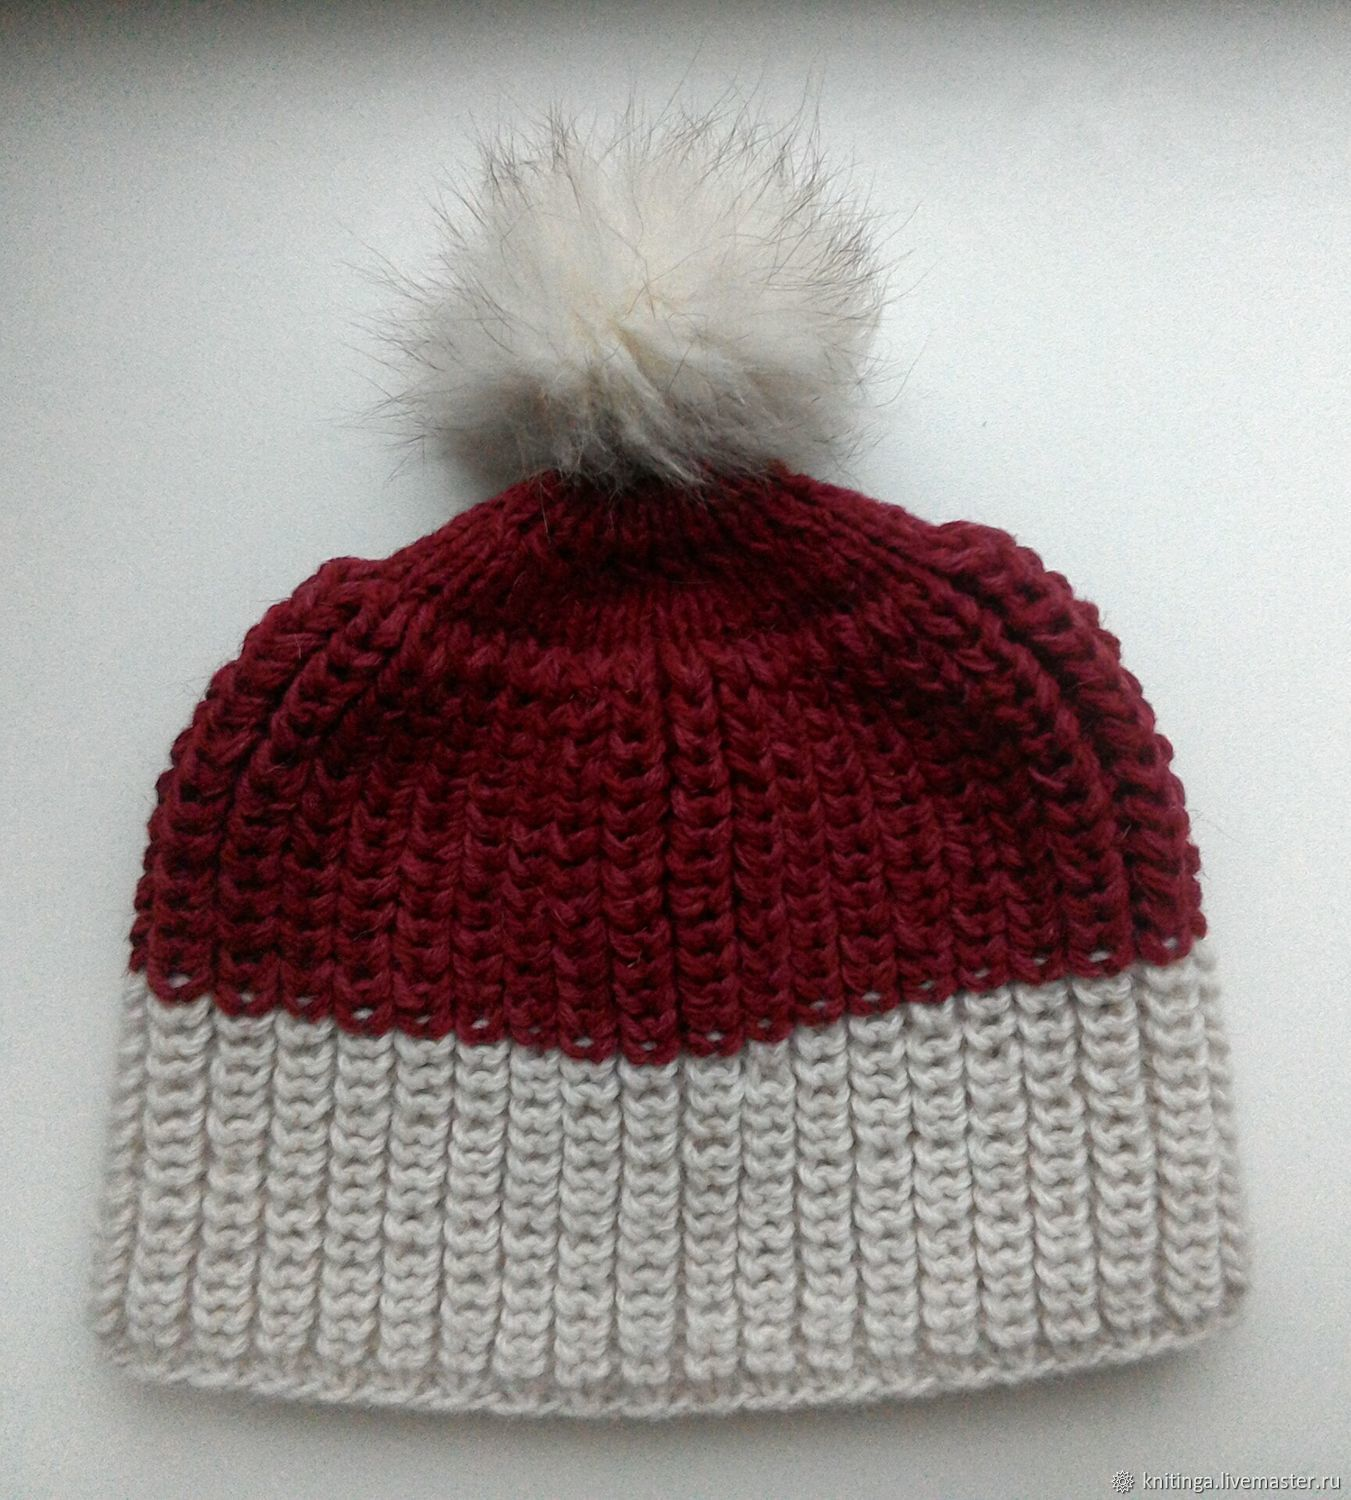 Knitted hat with pompom 56-58 cm, Caps, Vilnius,  Фото №1